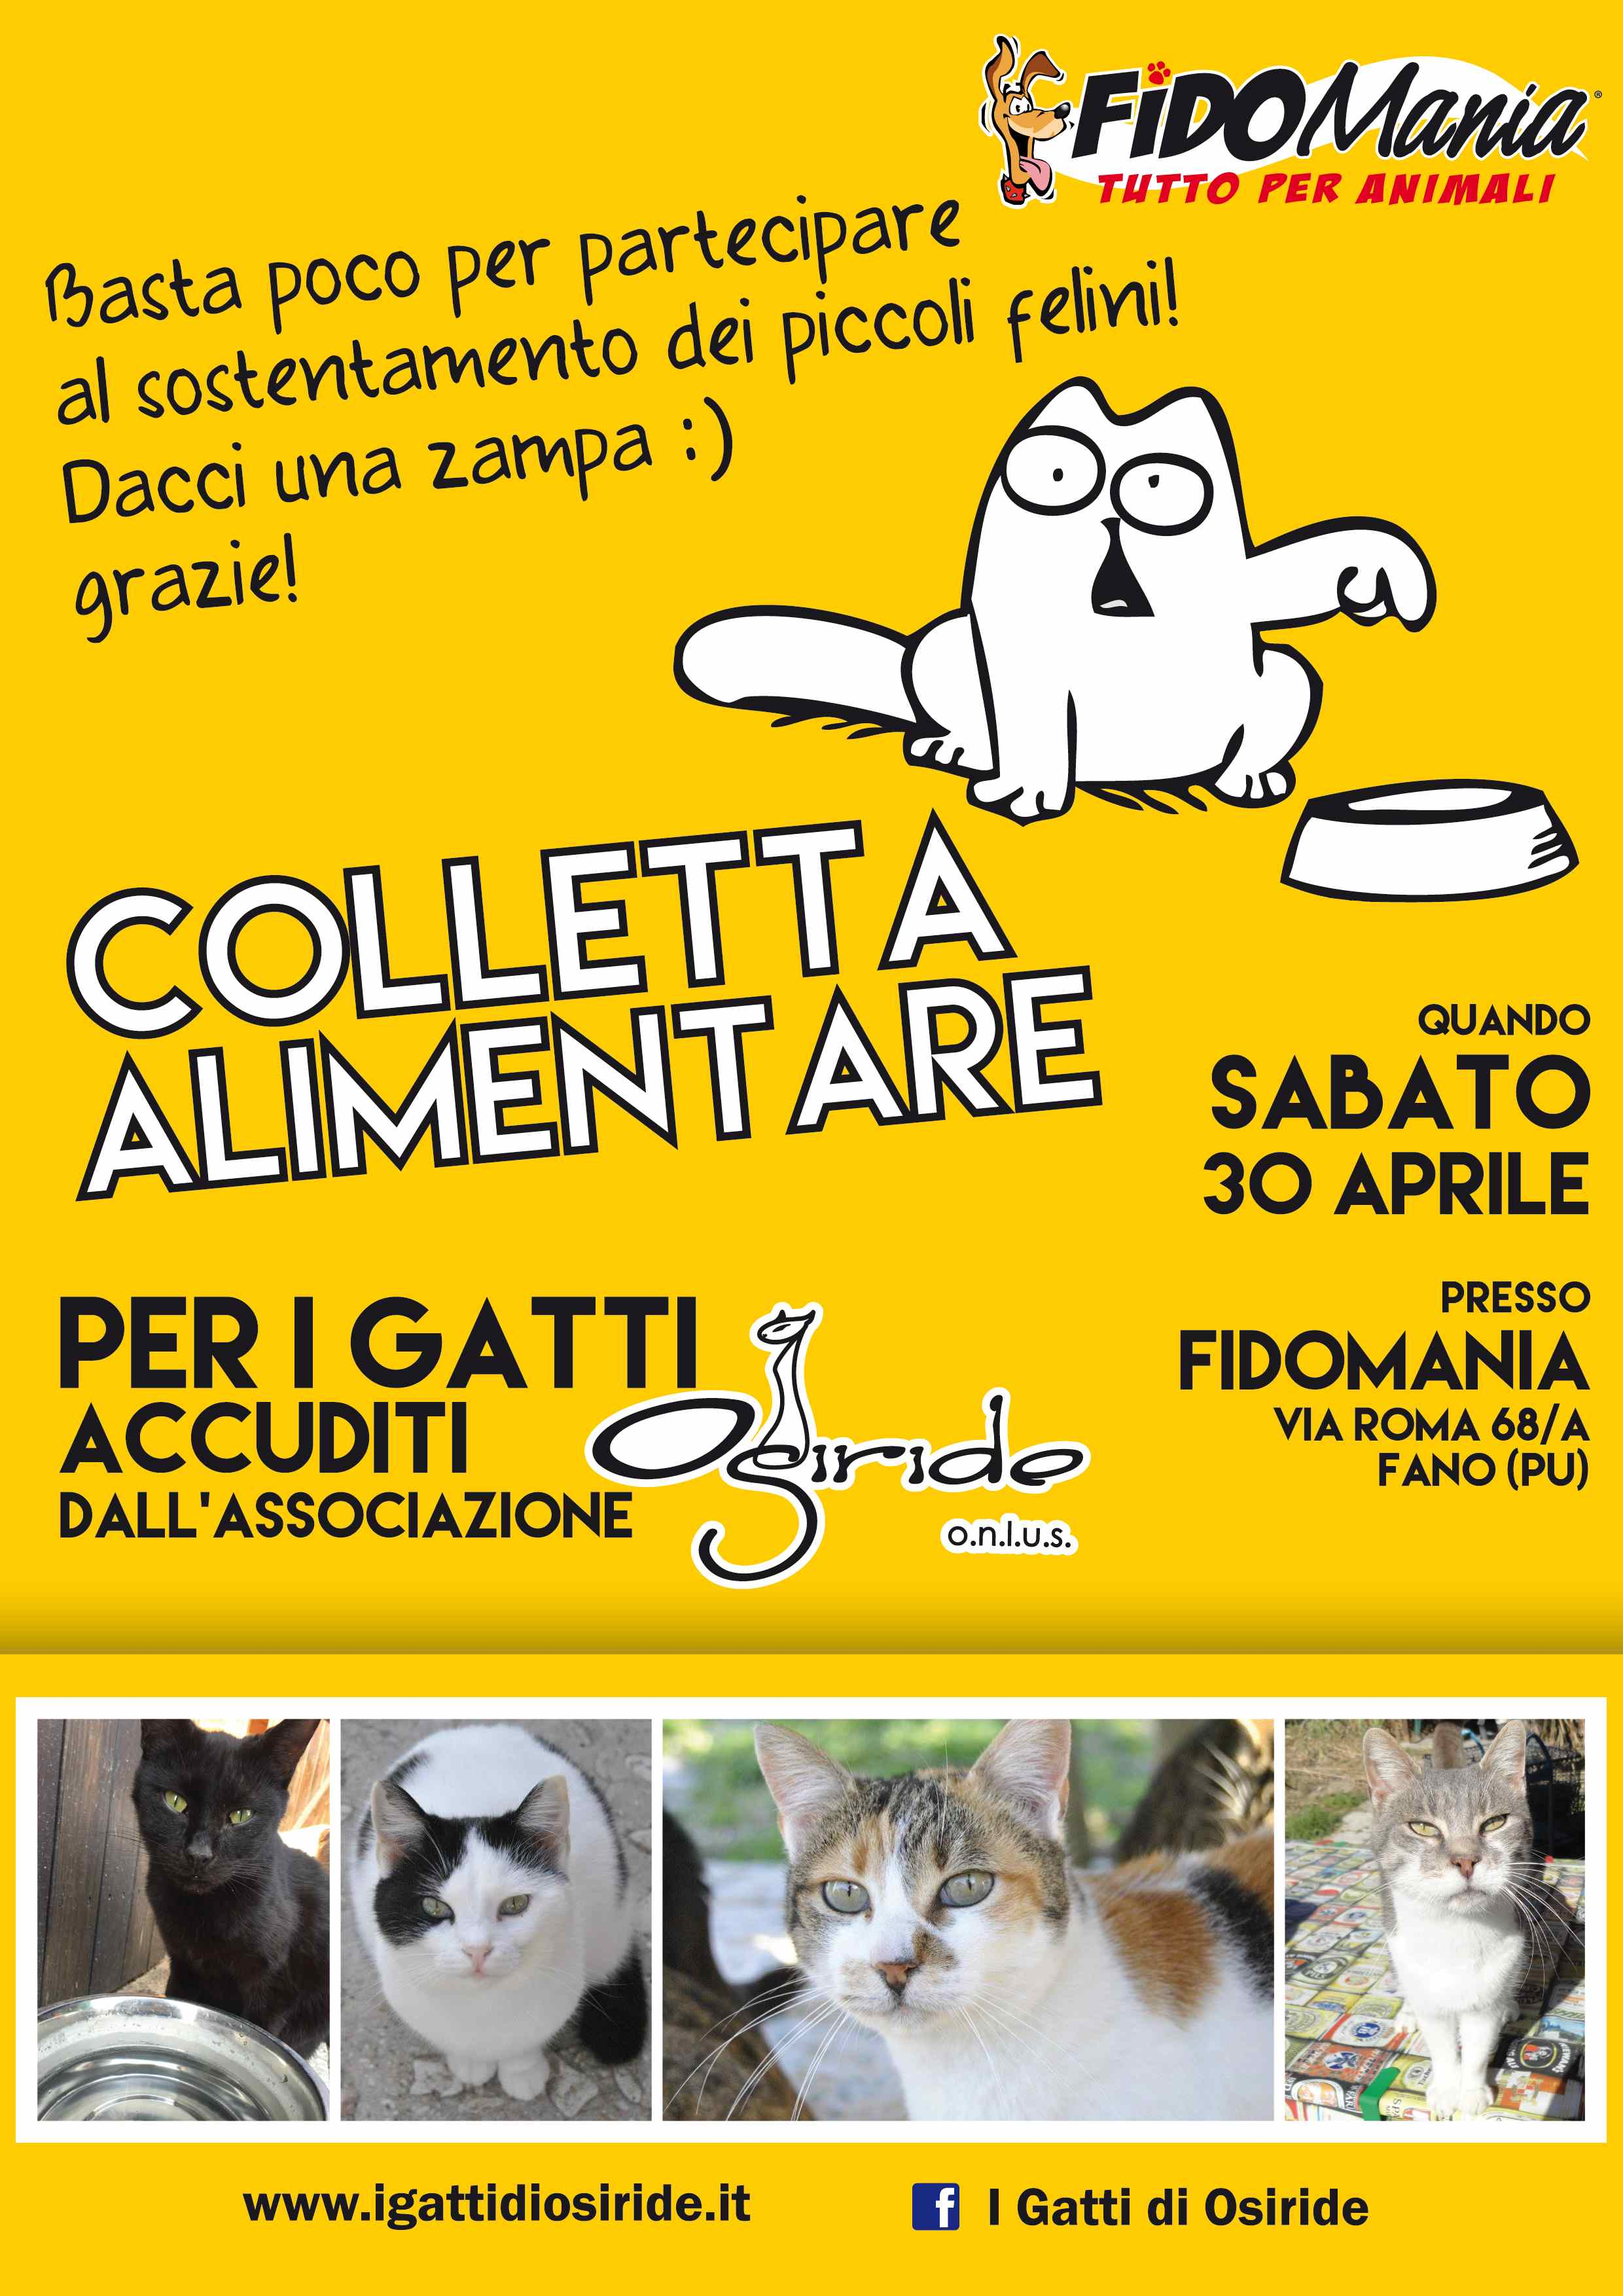 Colletta Alimentare Fidomania lht